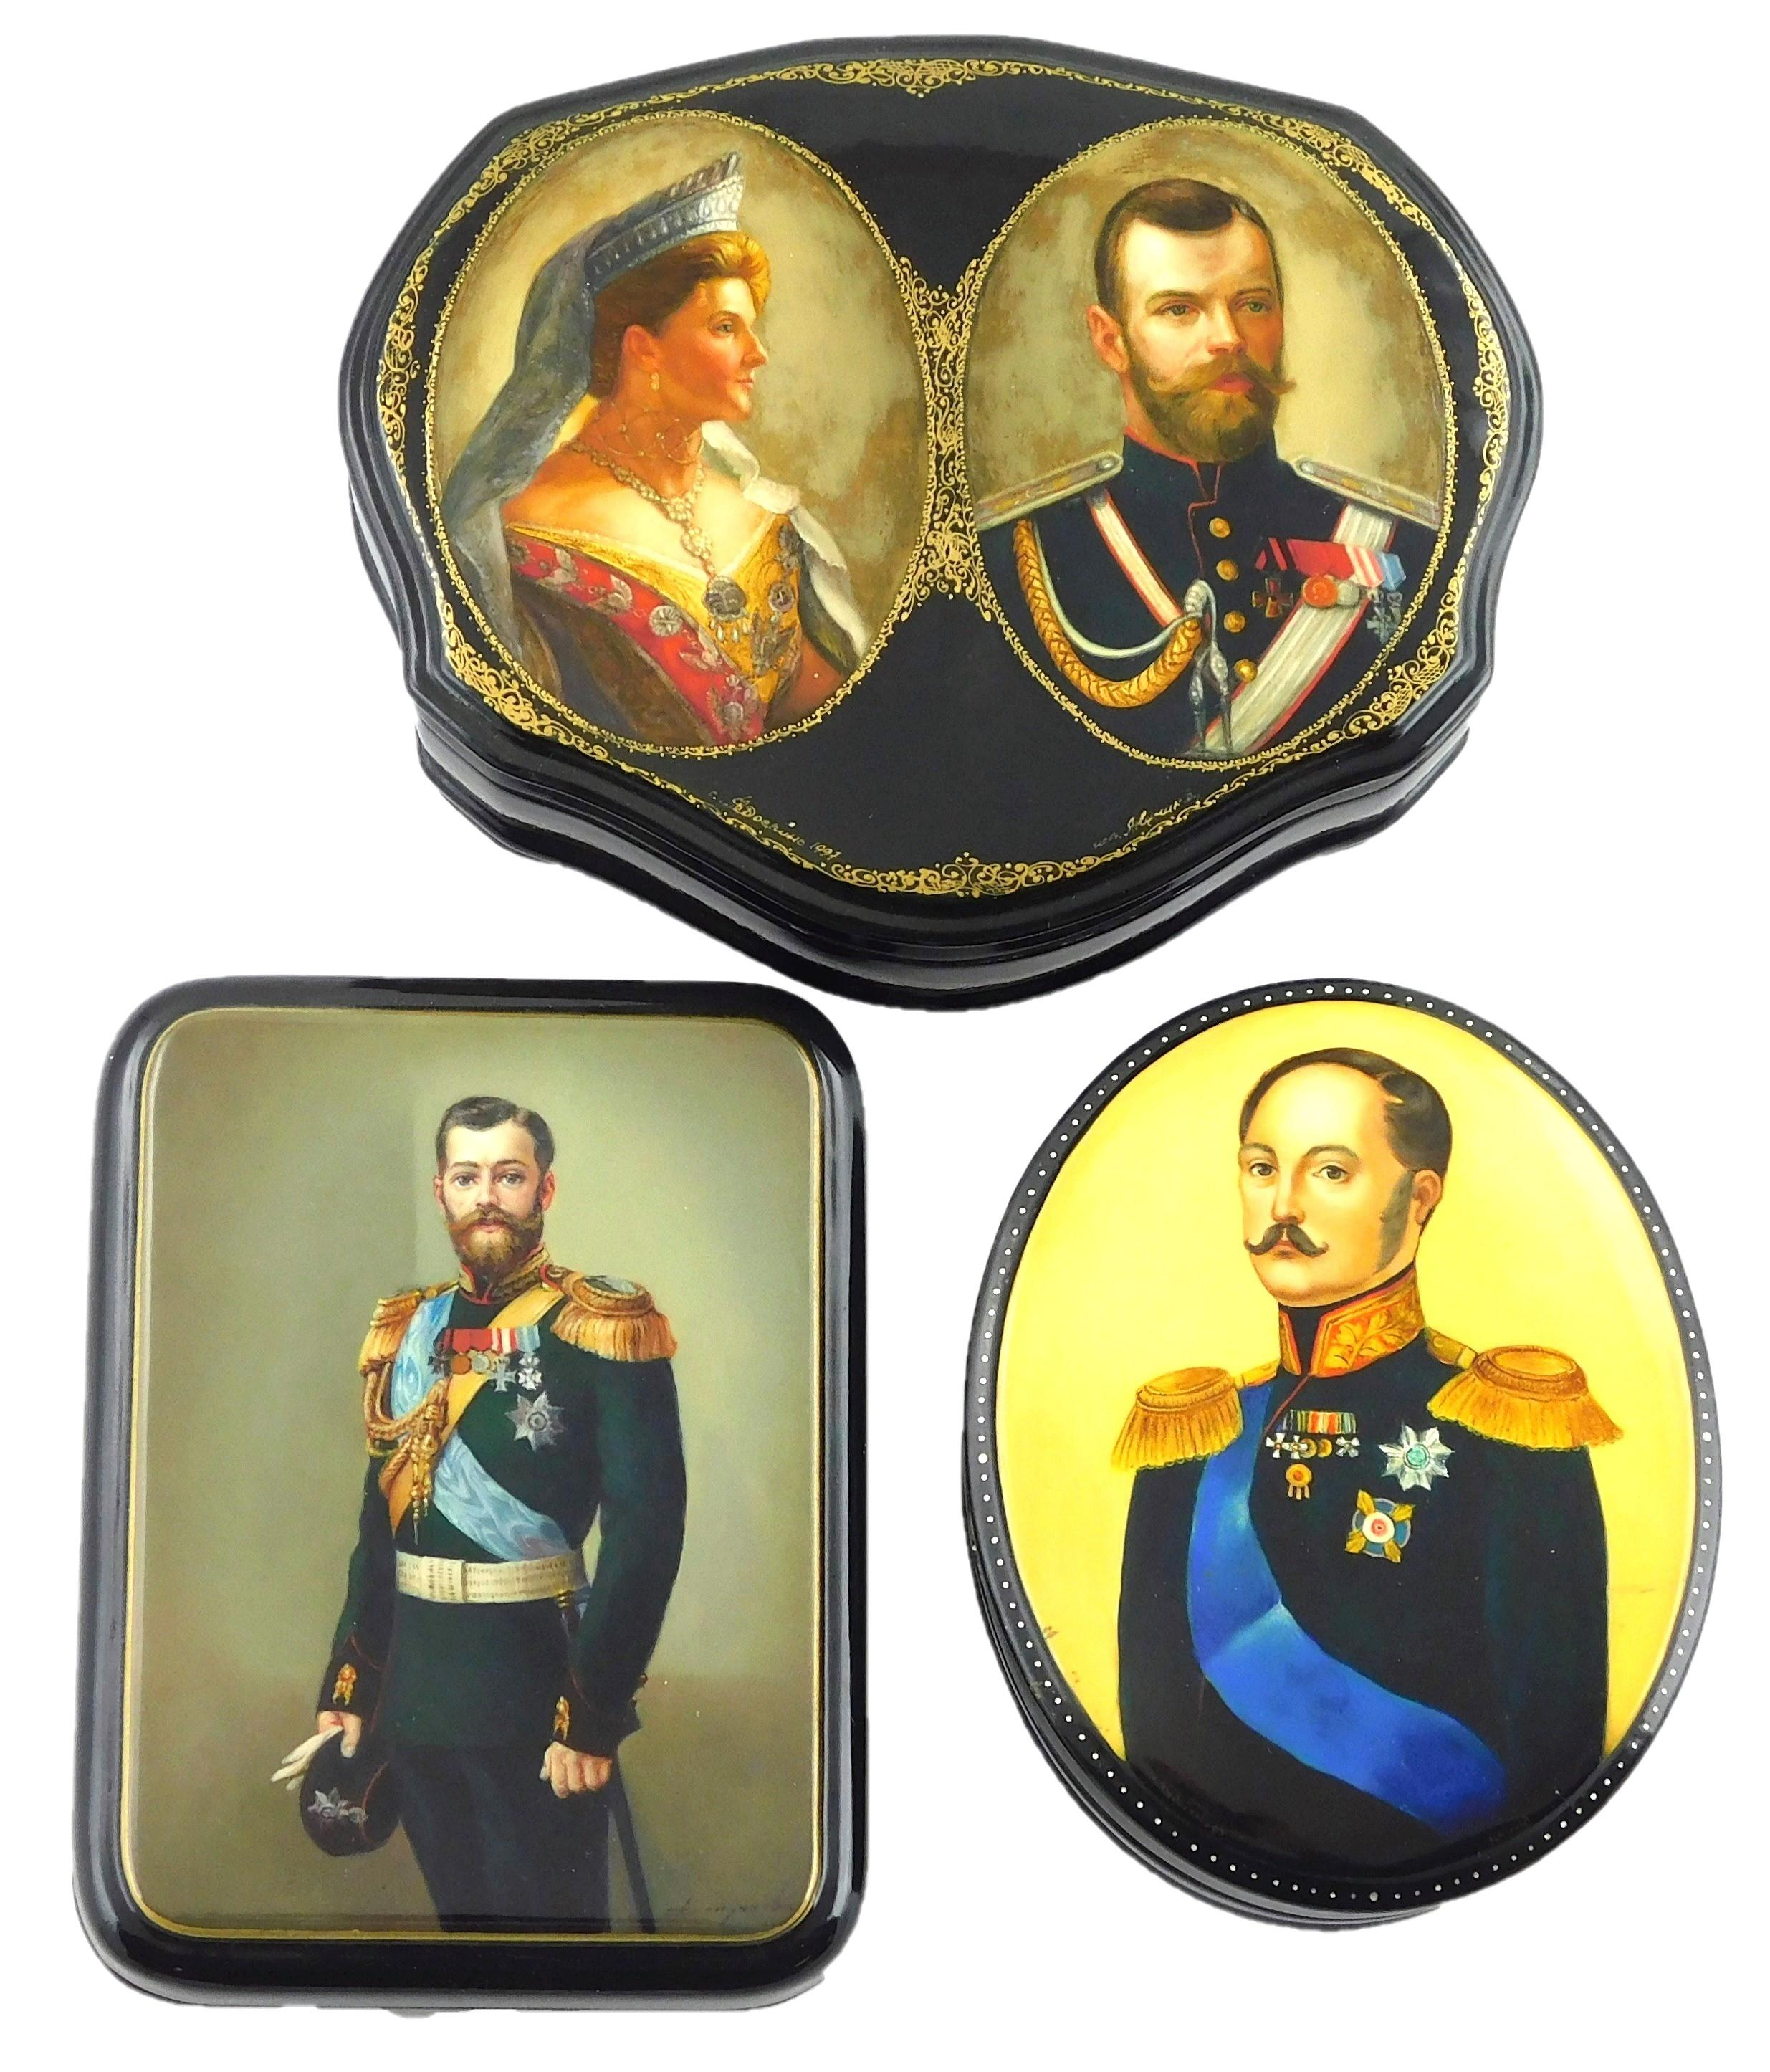 Russian hand-painted lacquer boxes, group of three with royal portraits: Nicholas I, depicted from the waist up, signed on lower edg...